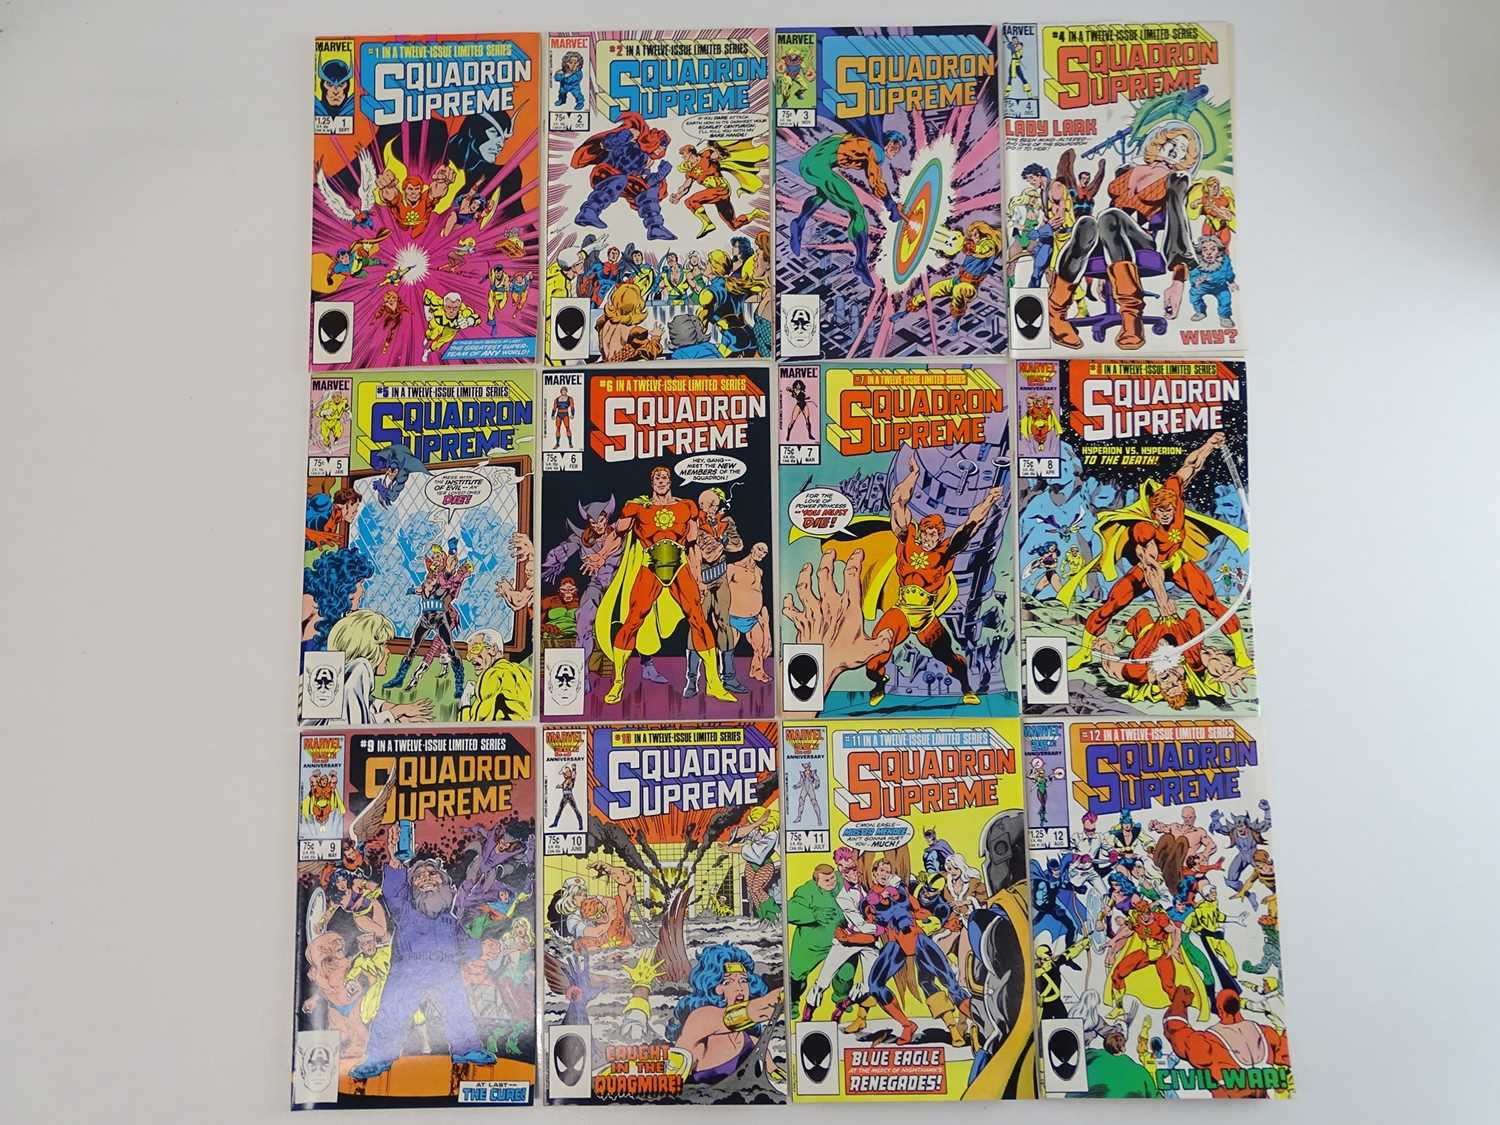 SQUADRON SUPREME - (12 in Lot) - (1985/86 - MARVEL) Complete 12 Issue run for the Limited Series -